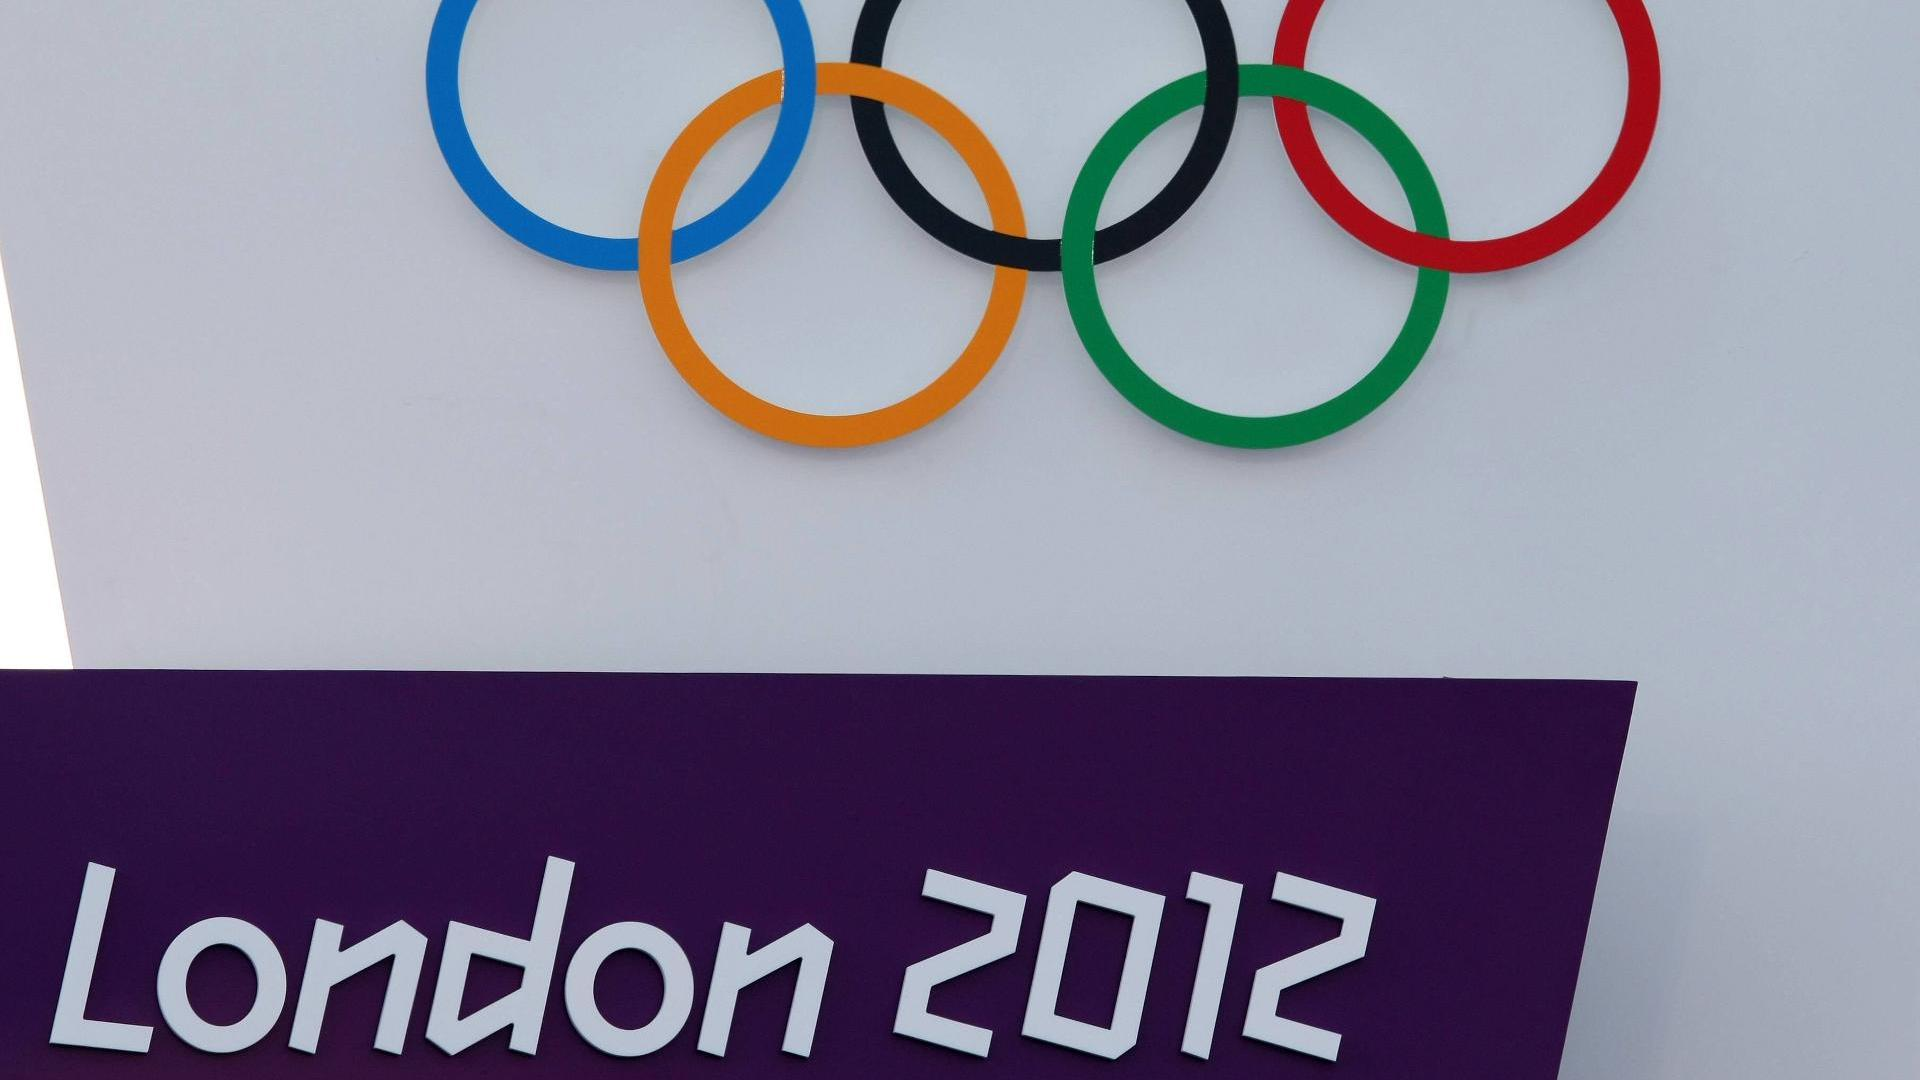 Olympia 2012 in London: 23 Sportler unter Dopingverdacht